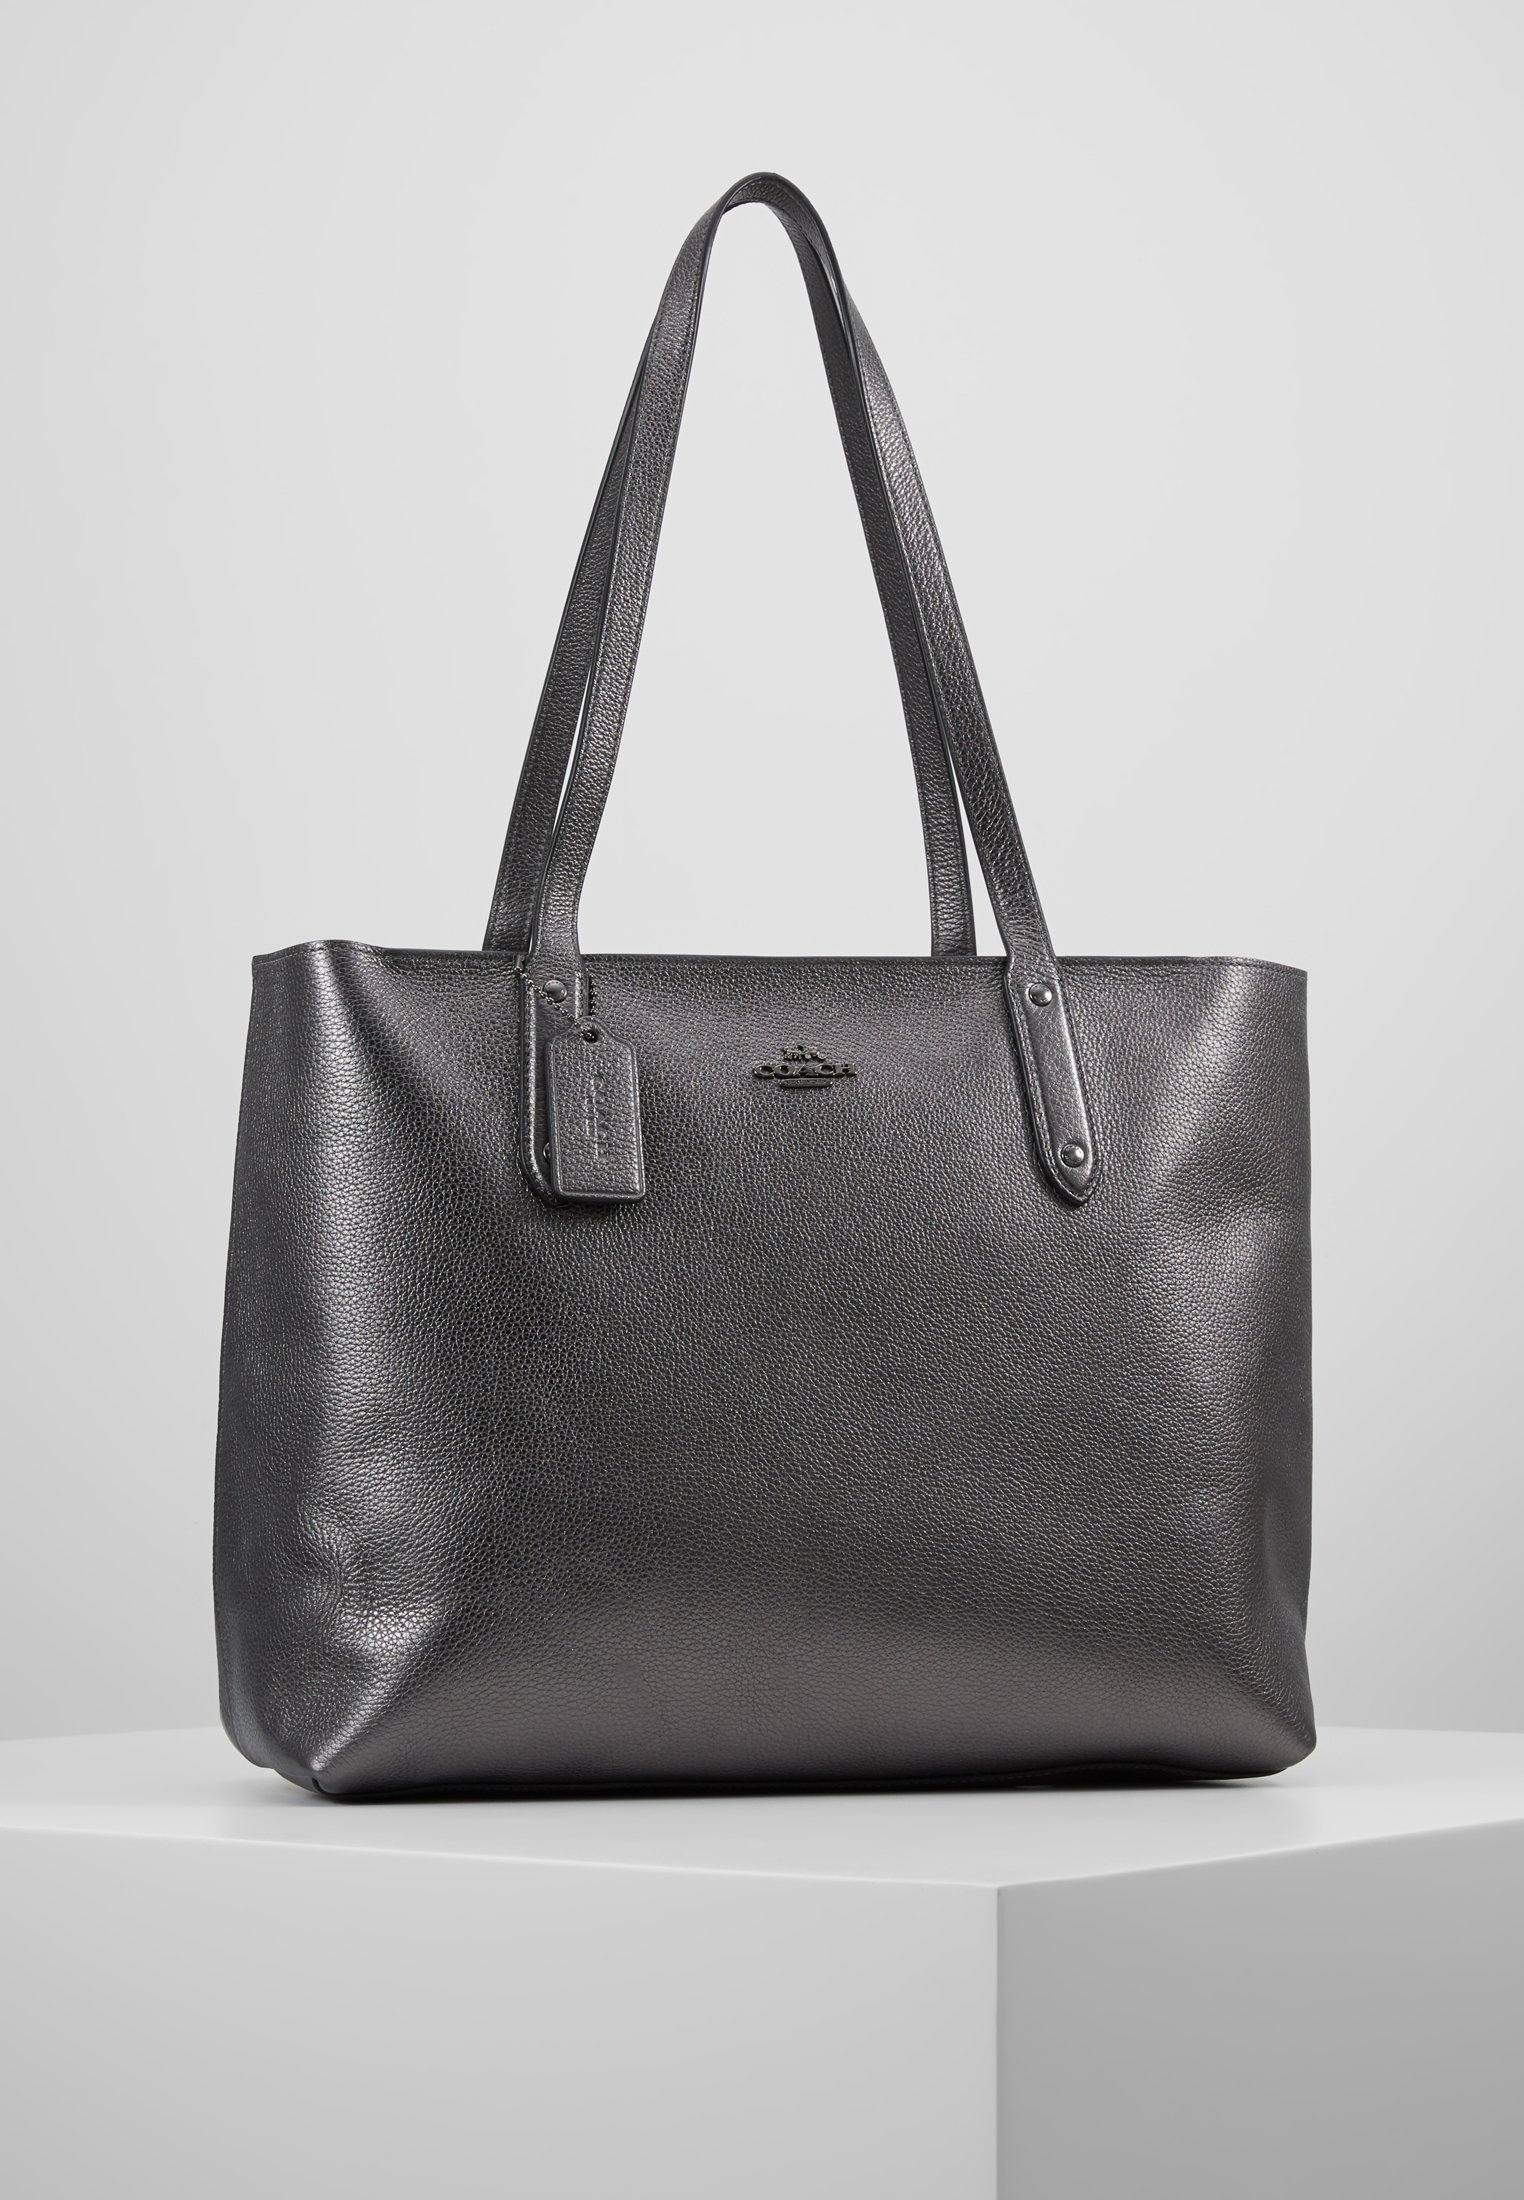 Bag Tote Metallic Central Coach ZipShopping With Graphite Nvnw80mO